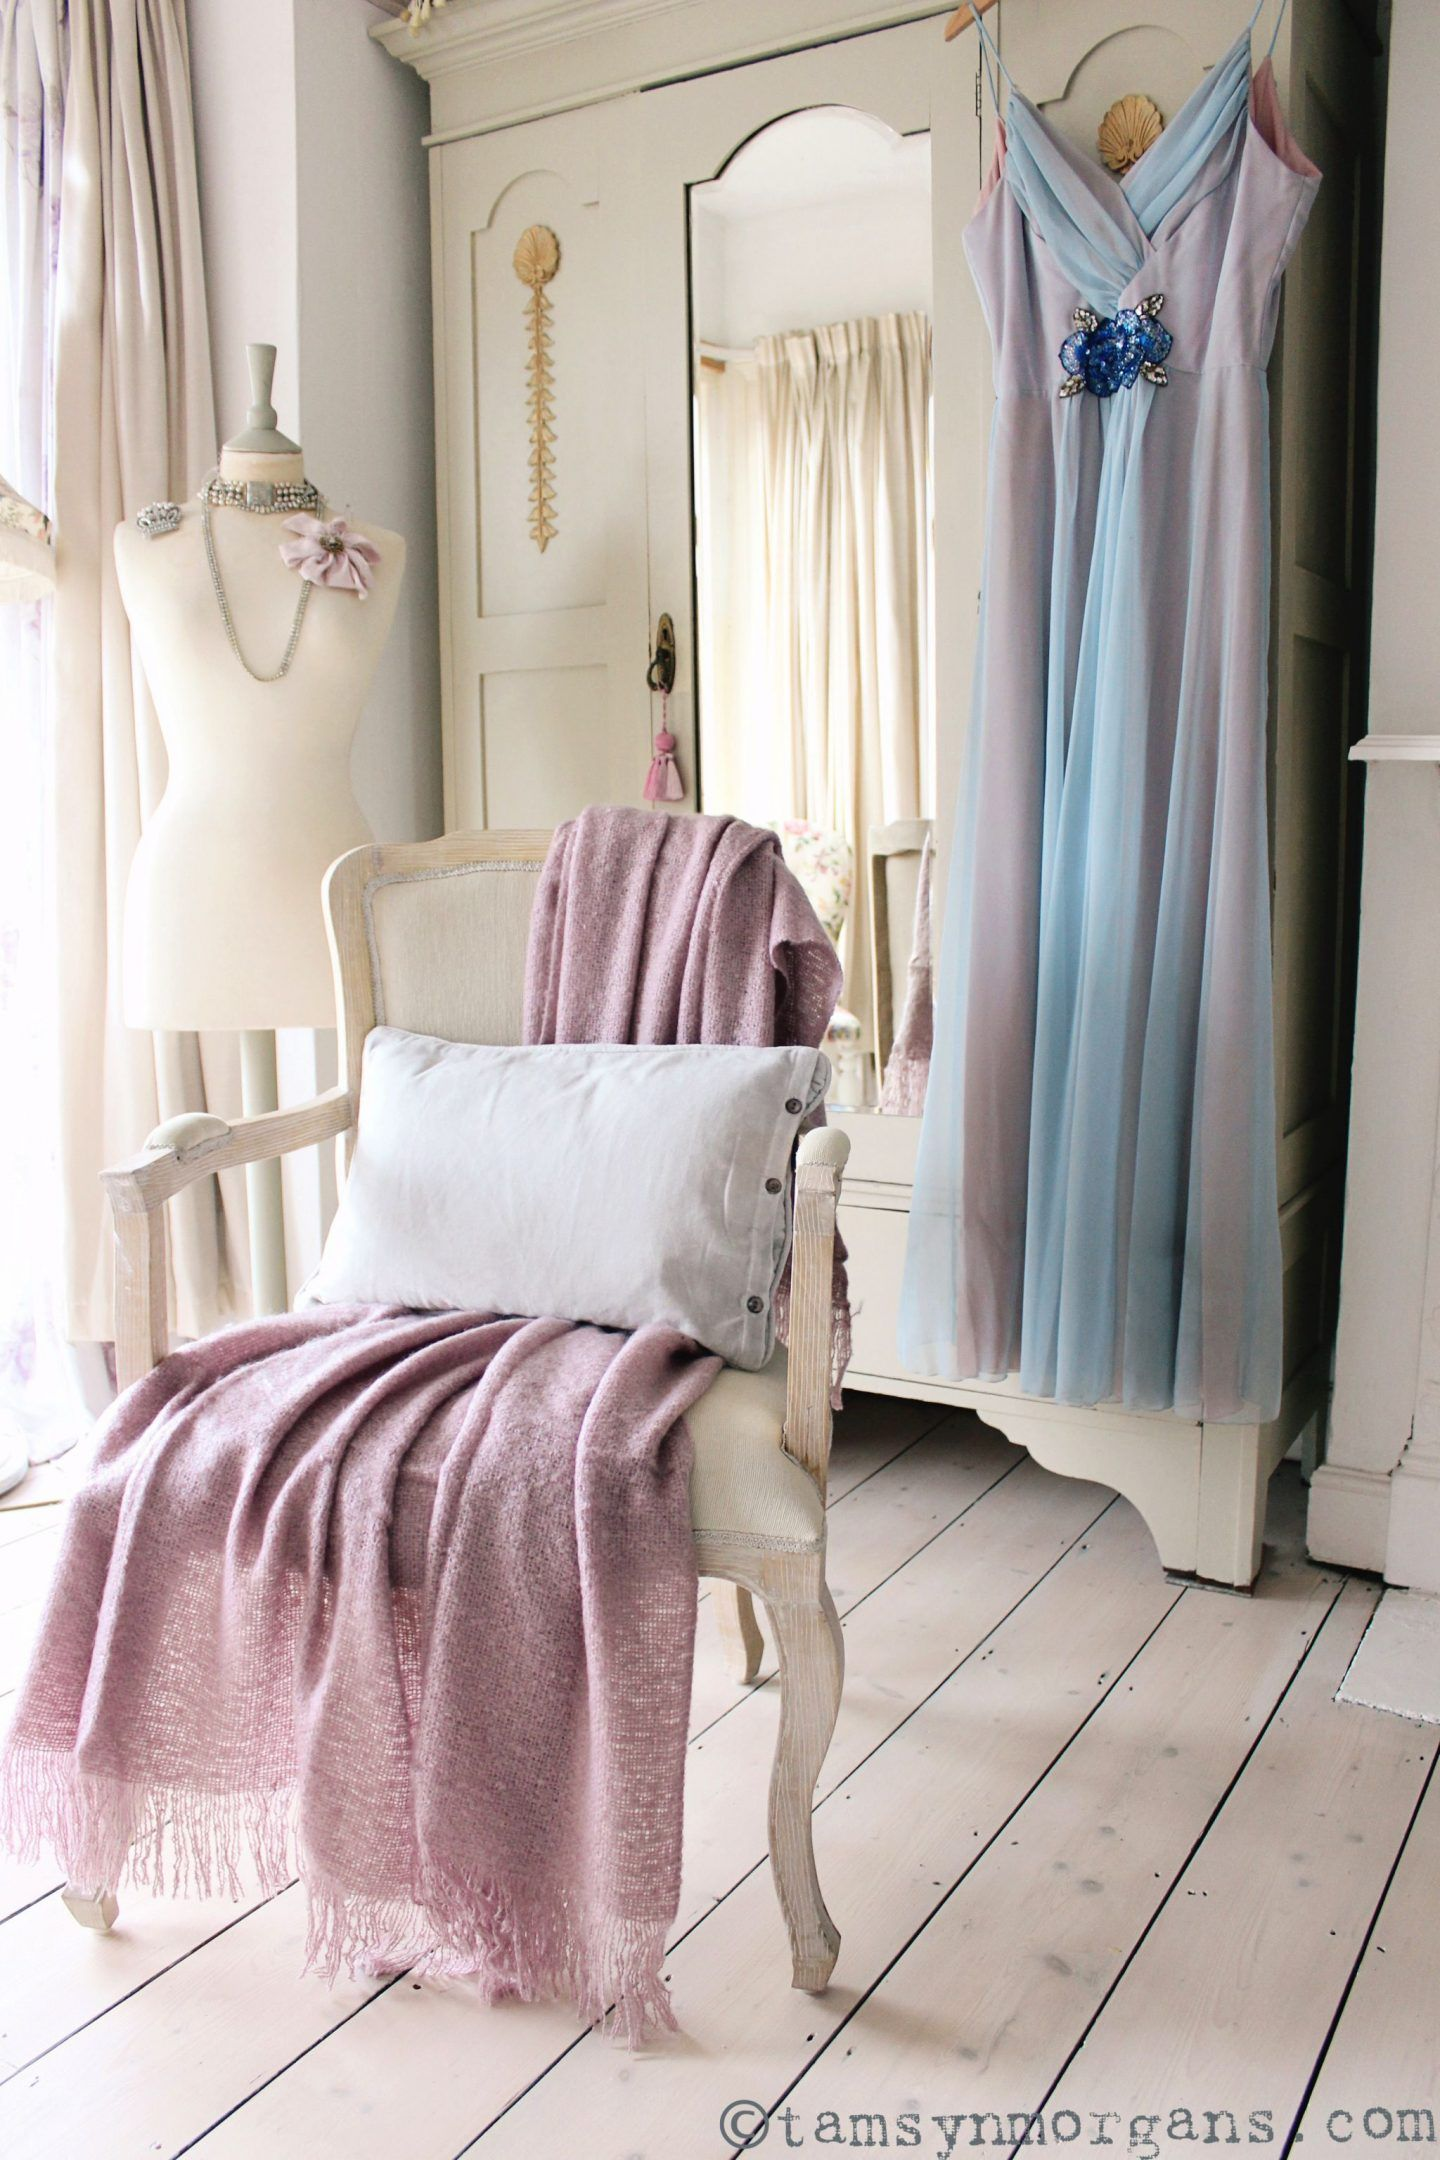 Bedroom Style With The French Bedroom Company   Beautiful Muted Pastel  Shades, Vintage Bedroom,